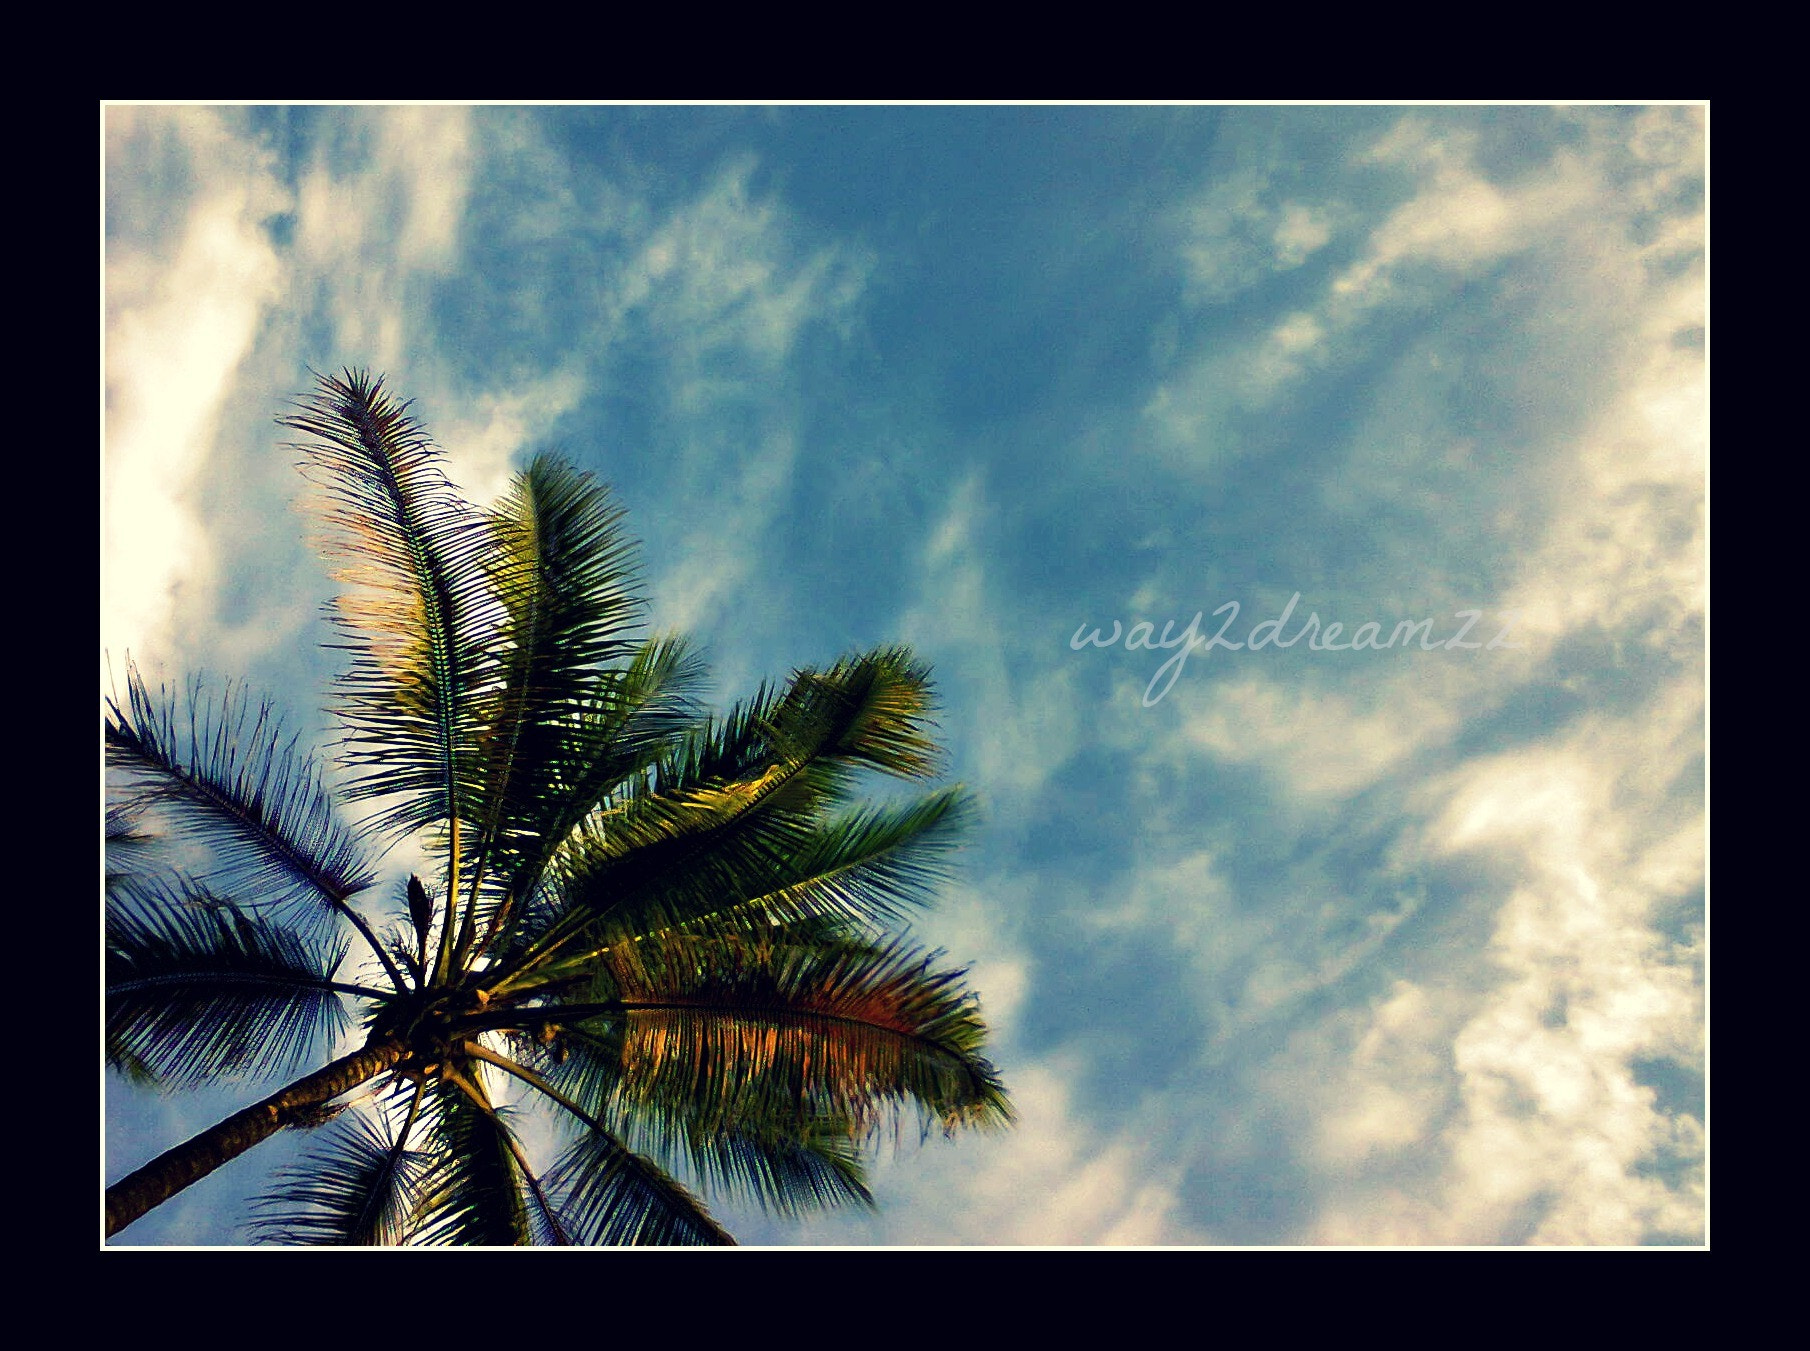 Photograph Sky's the Limit  by Way 2 Dreamzz on 500px